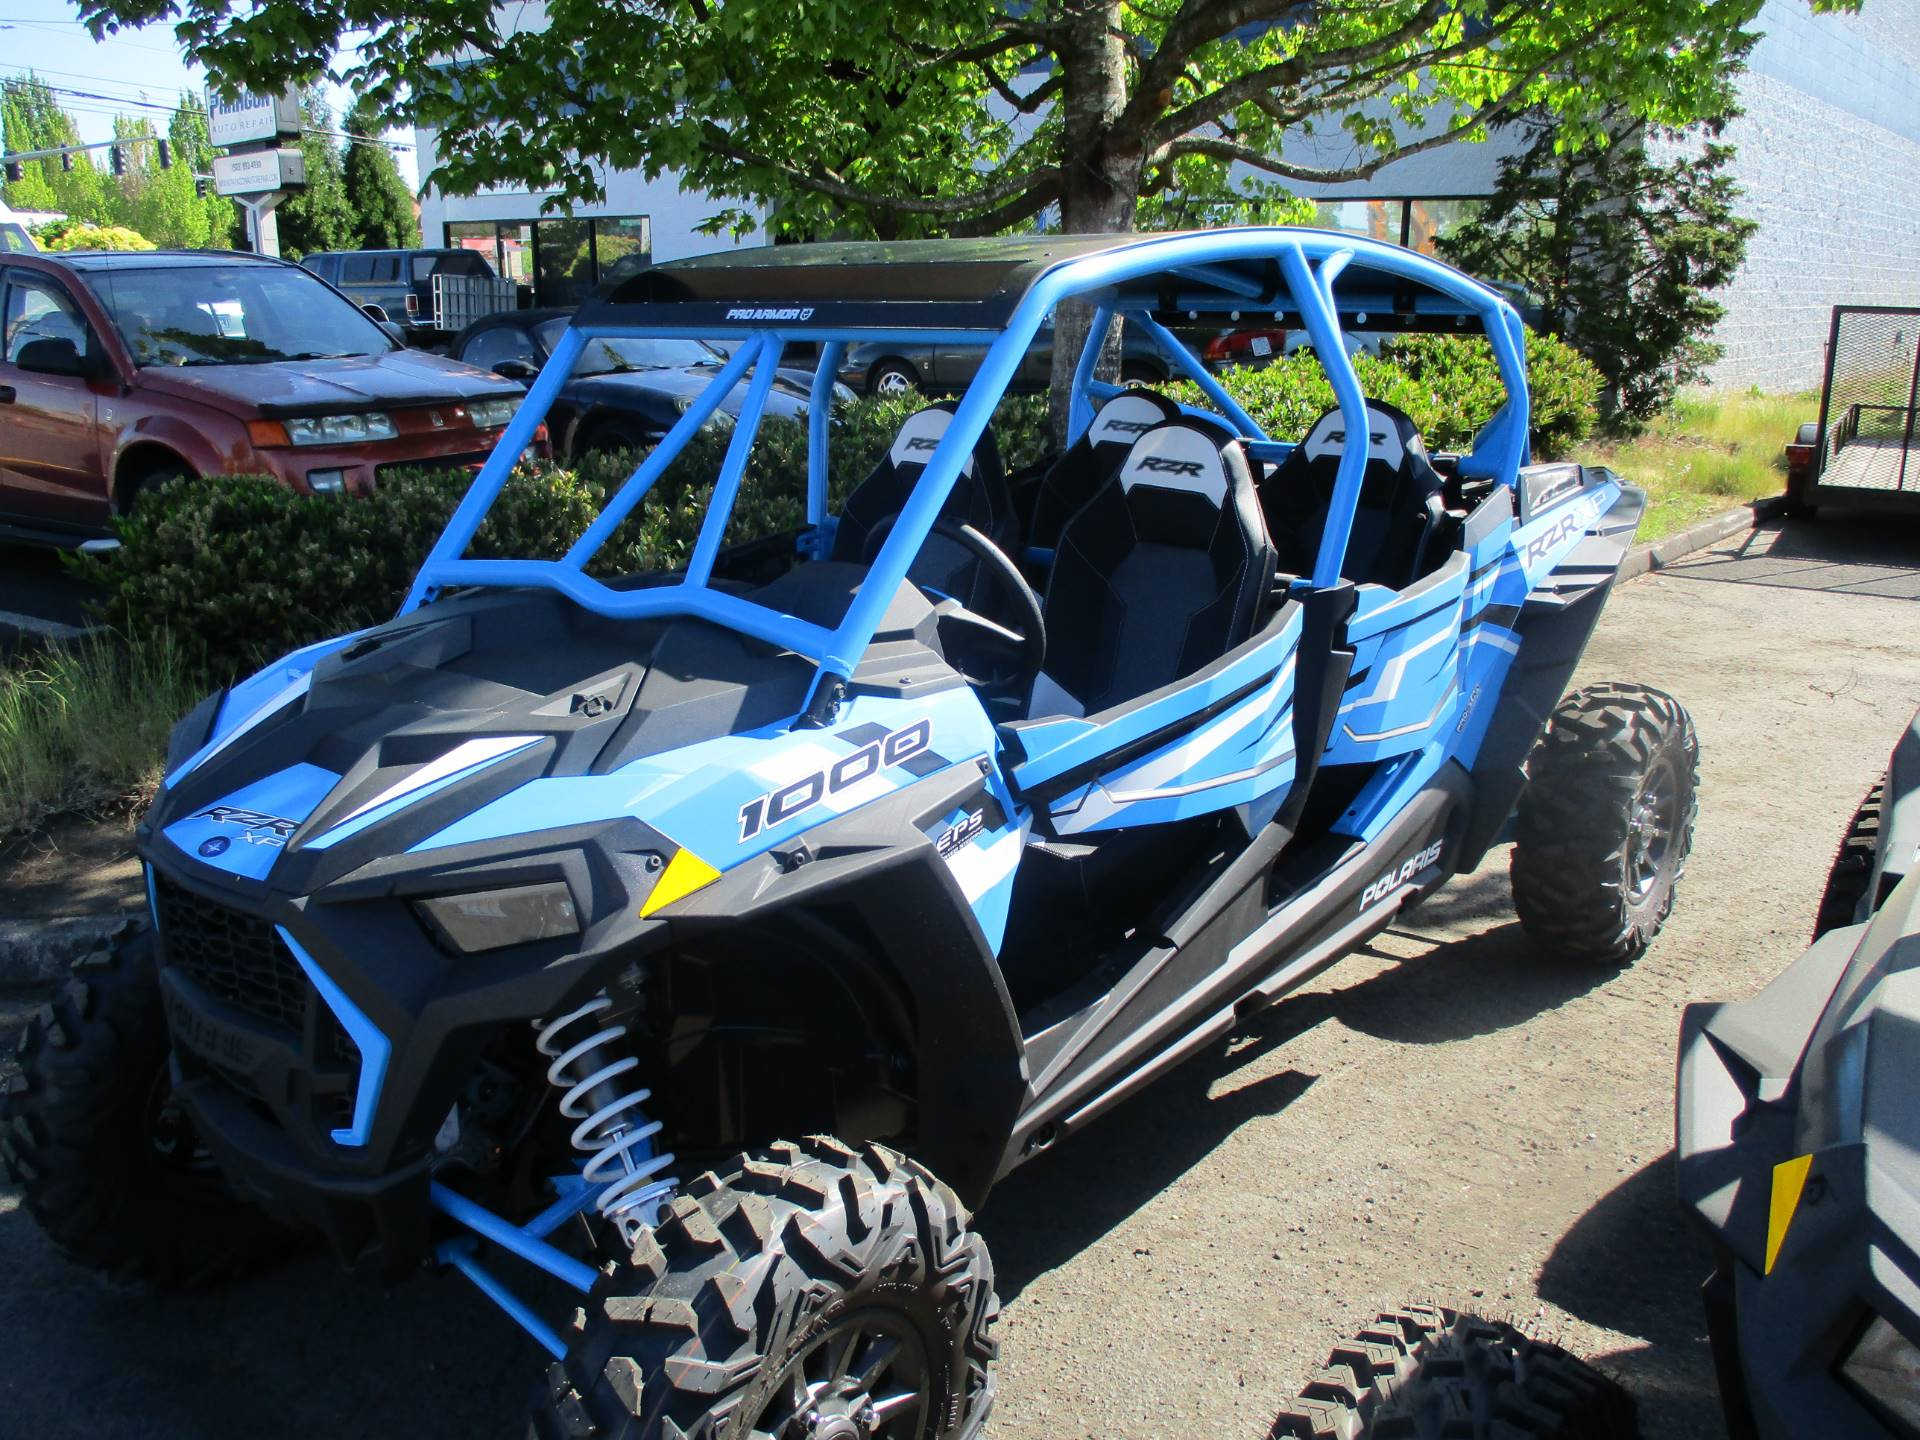 2019 Polaris RZR XP 4 1000 EPS in Tualatin, Oregon - Photo 1